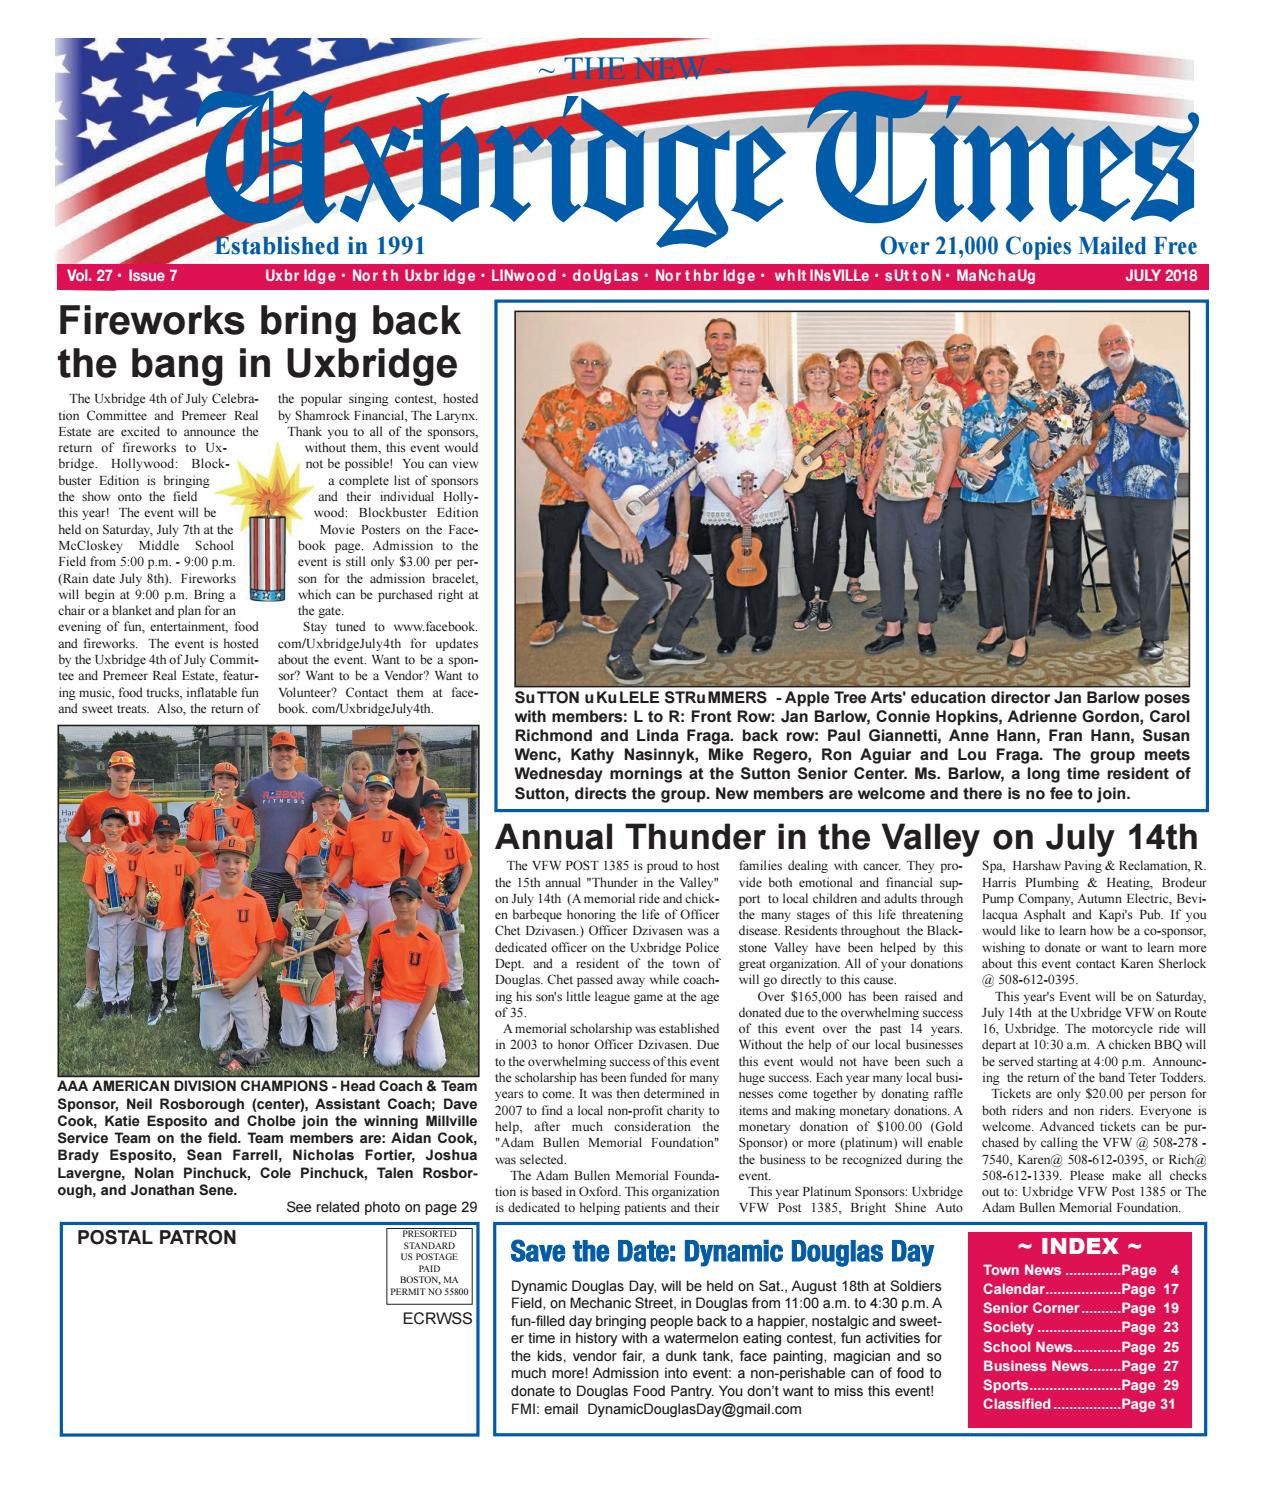 The New Uxbridge Times - July, 2018 by The New Uxbridge Times - issuu